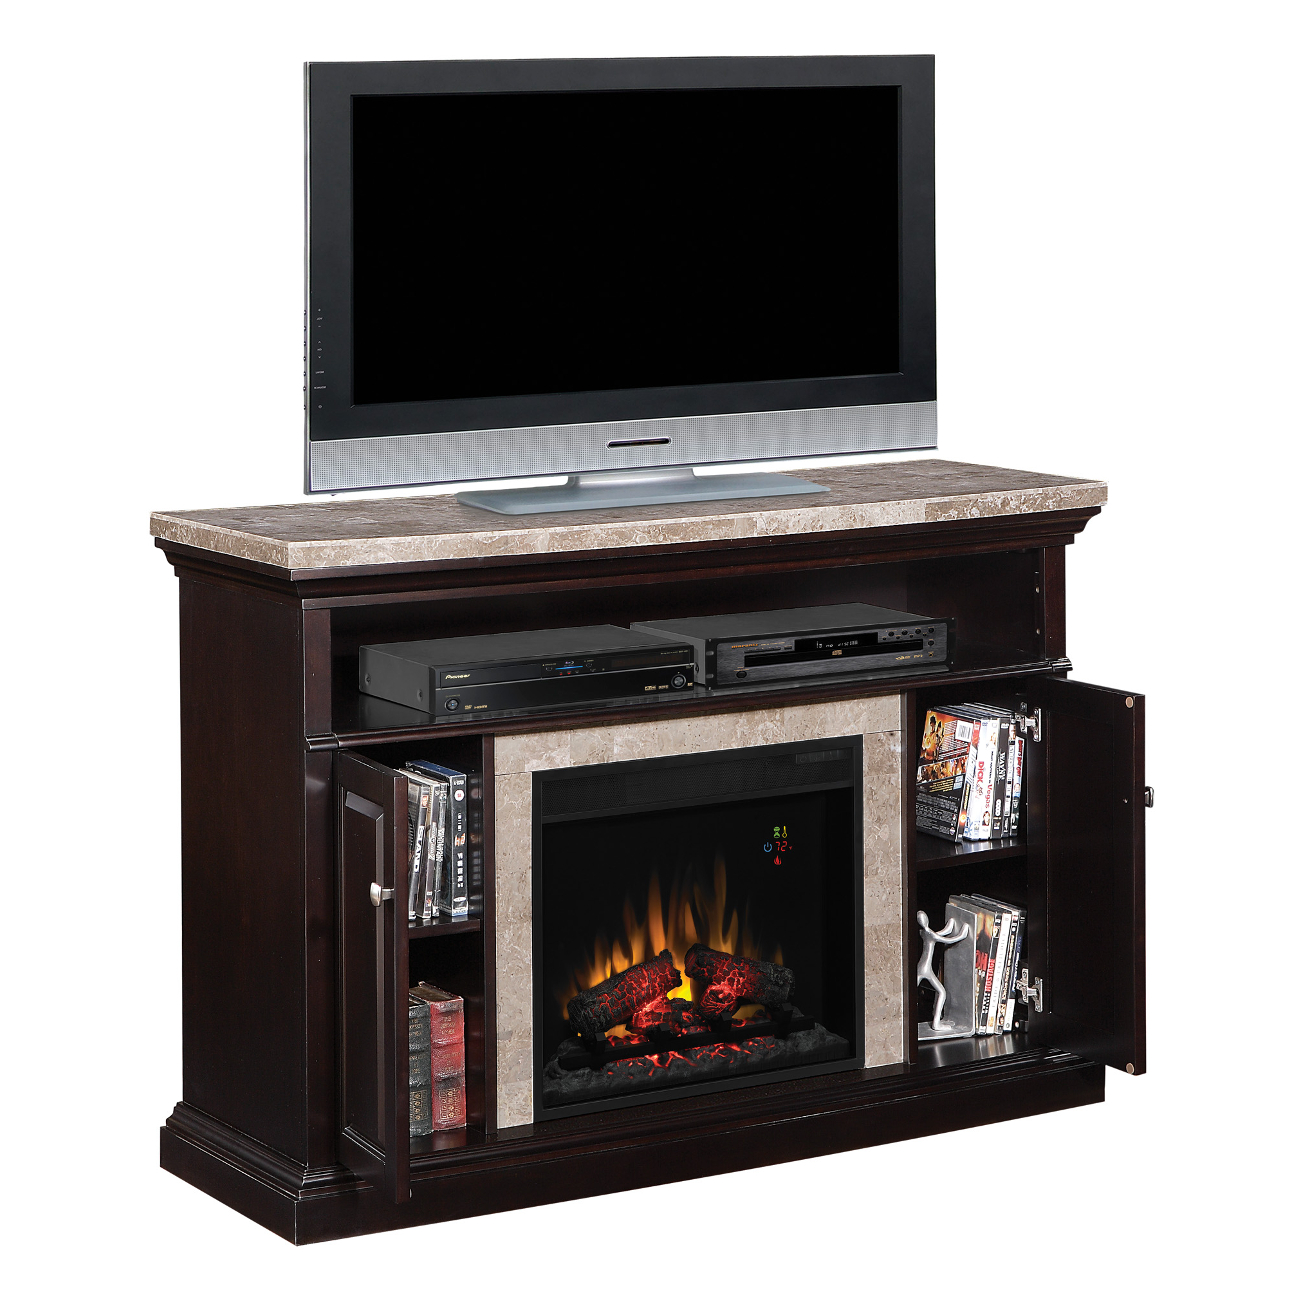 Classic Flame Brighton 23MM1424-X445 Coffee Black TV Media Console 23EF031GRP Electric Fireplace Insert